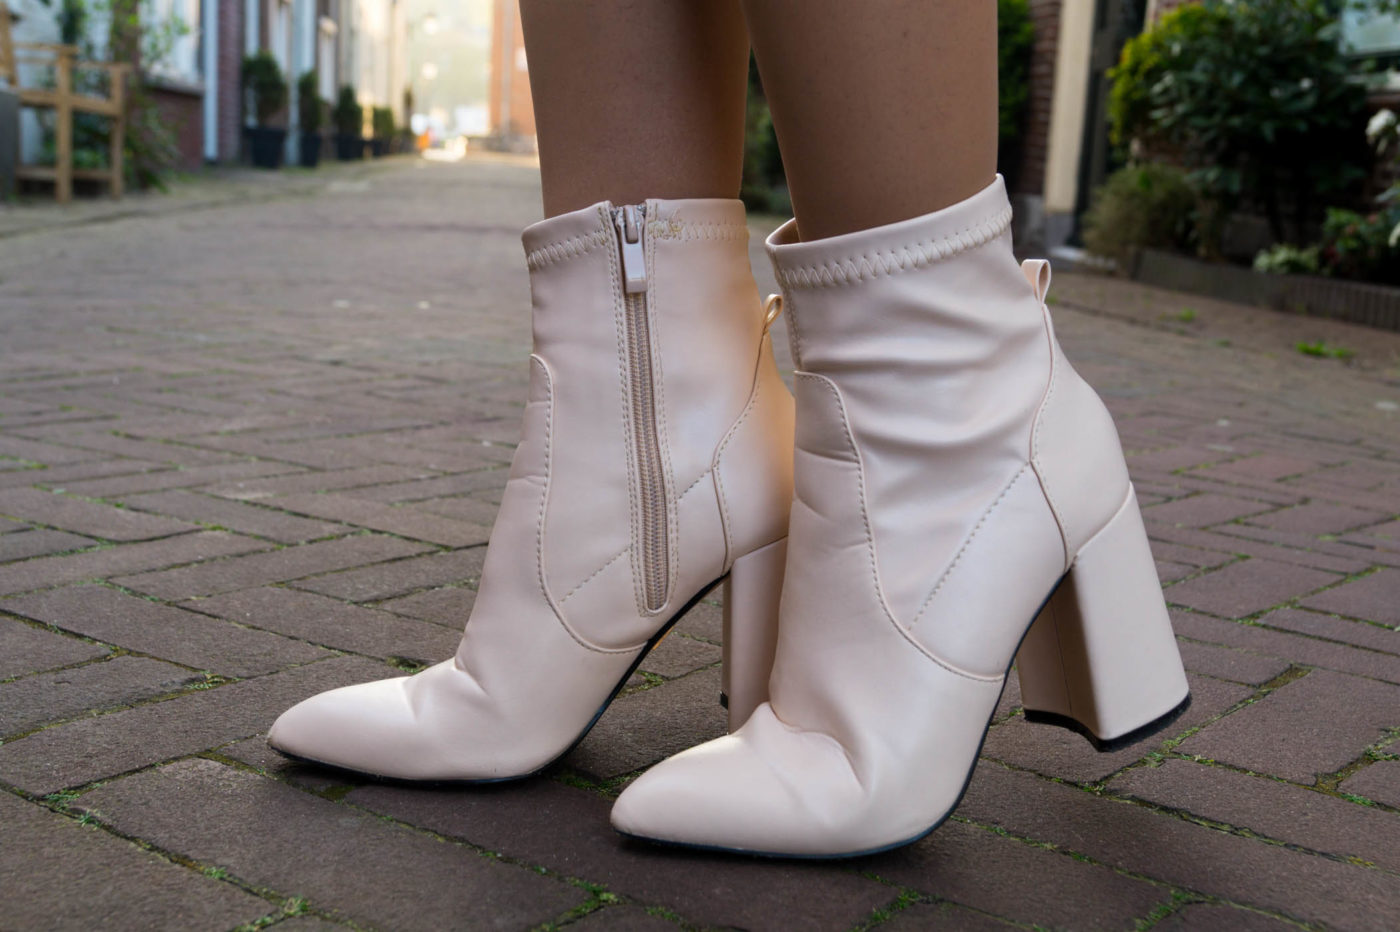 Nude ankle boots - The Colourful Bouquet